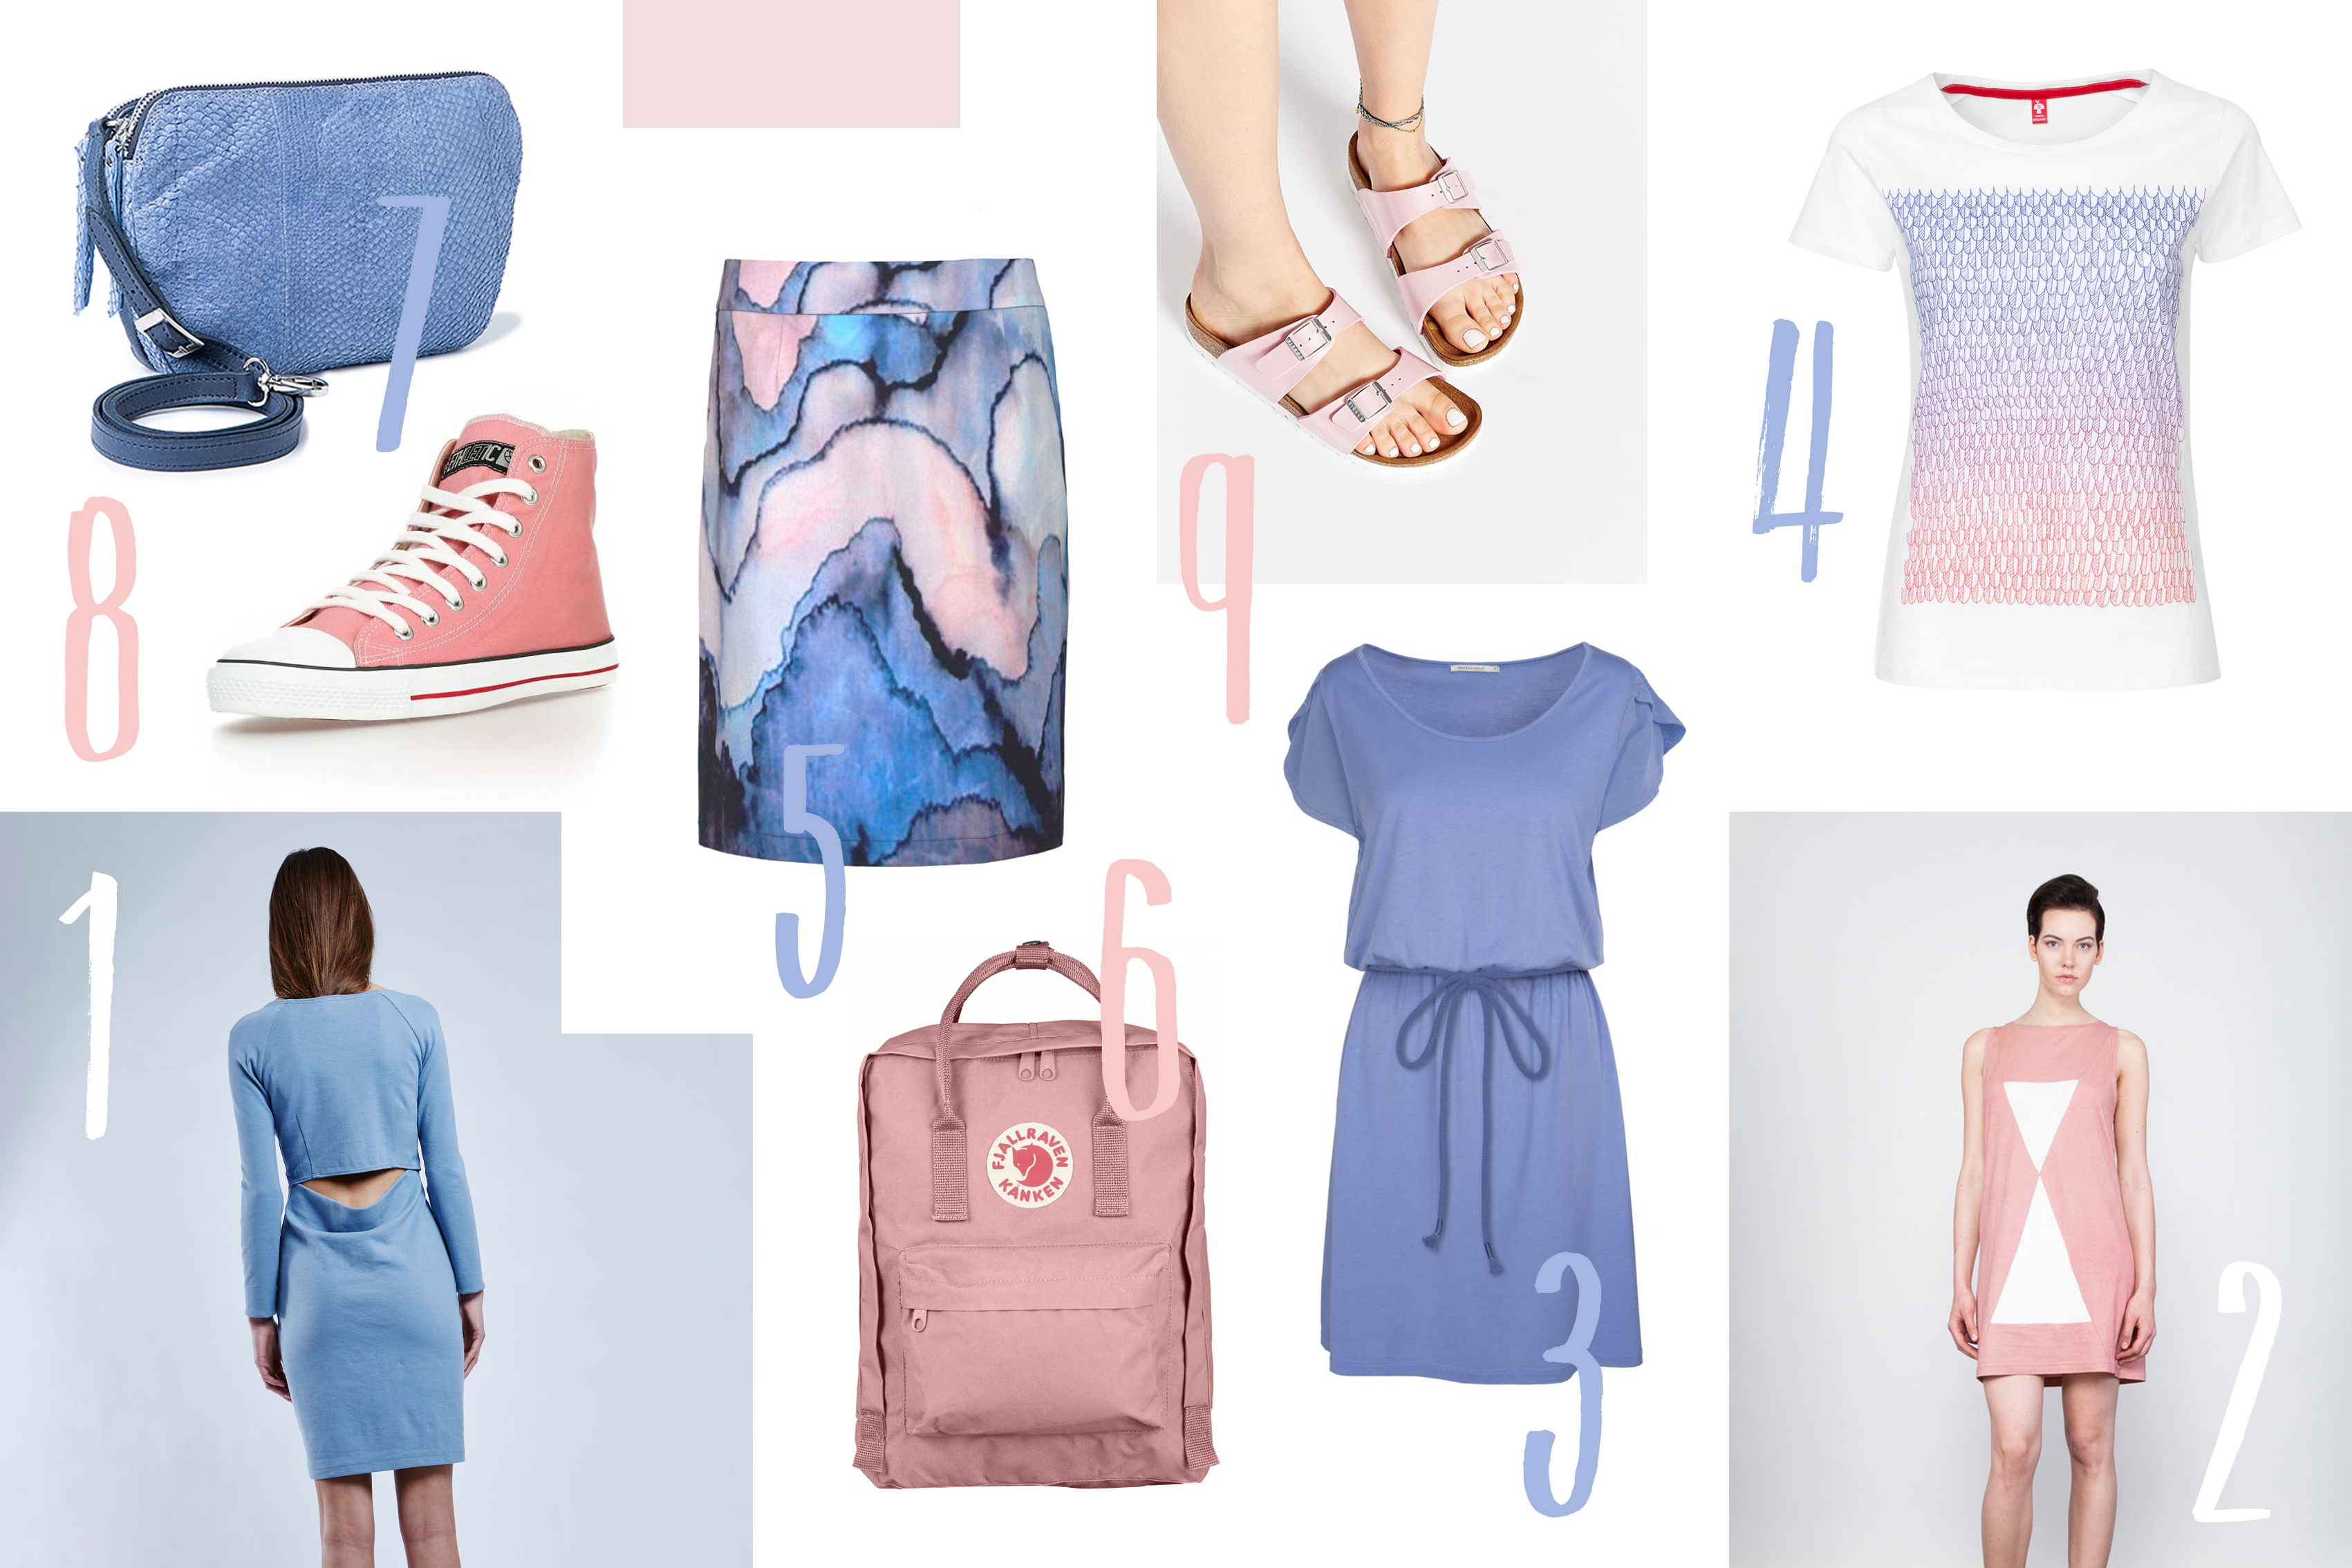 eco-fashion-pantone-colors-2016-rose-quartz-serenity